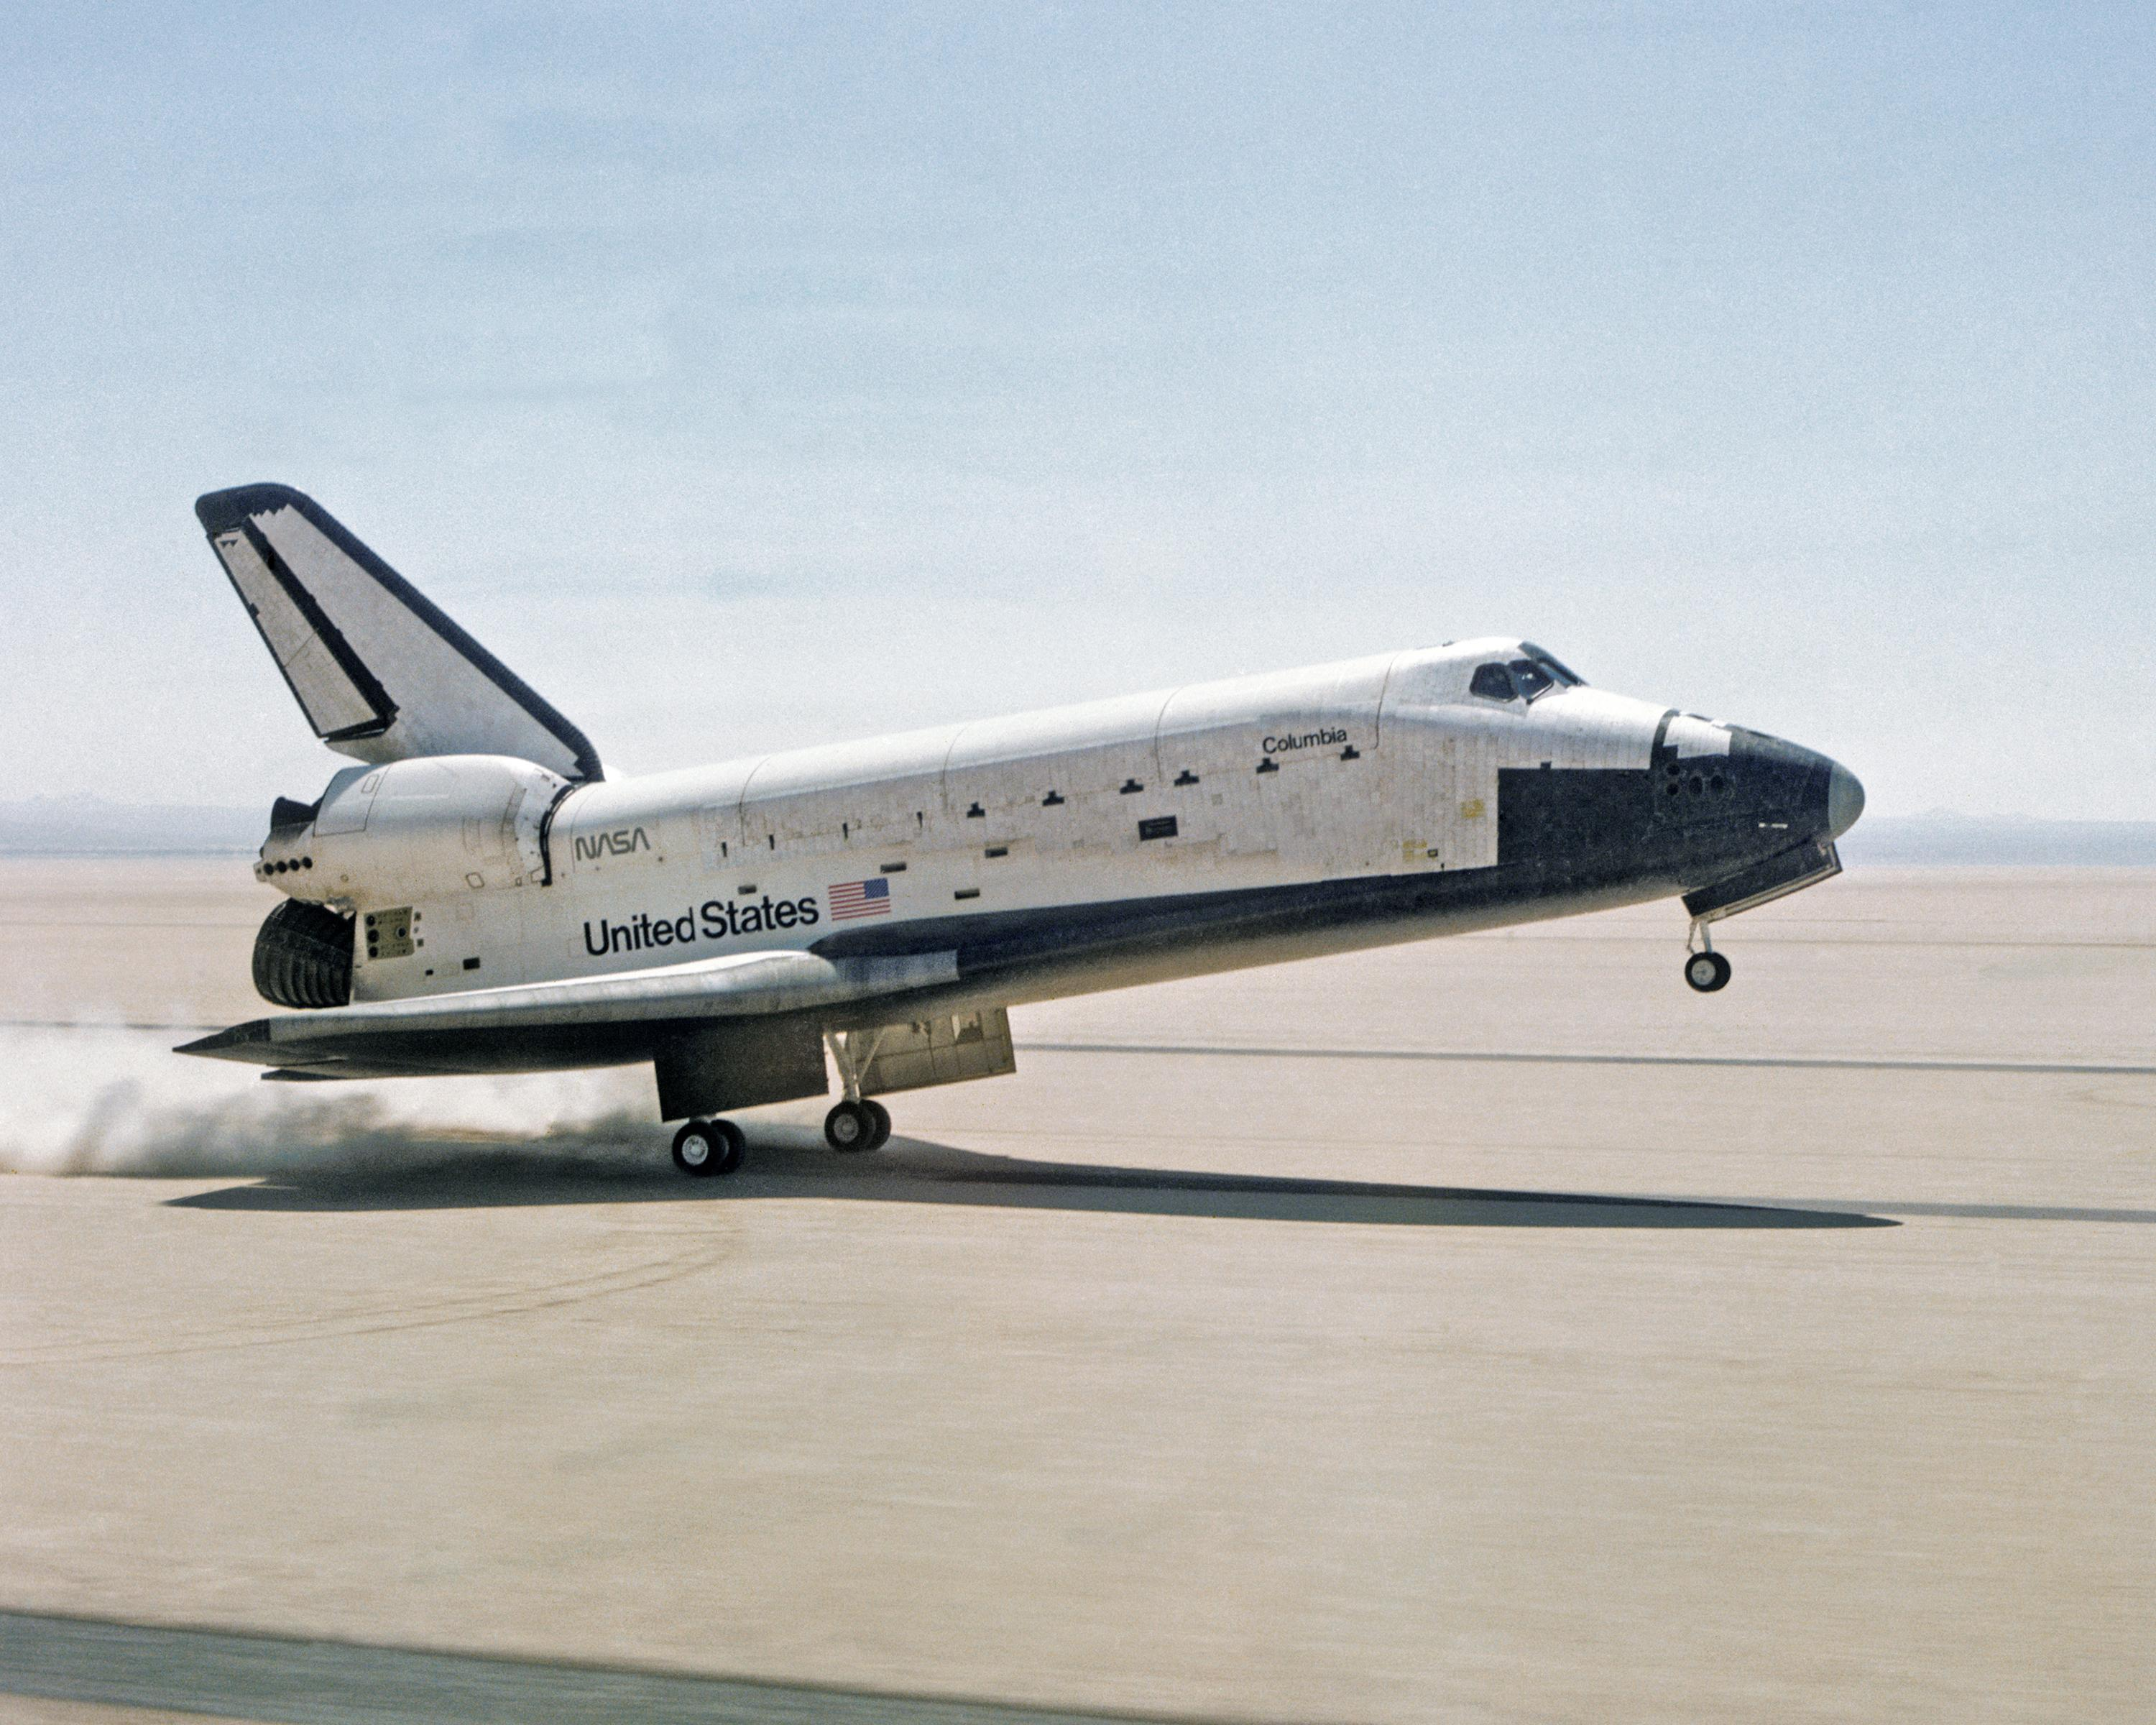 Space shuttle columbia touches down on lakebed runway 23 at edwards